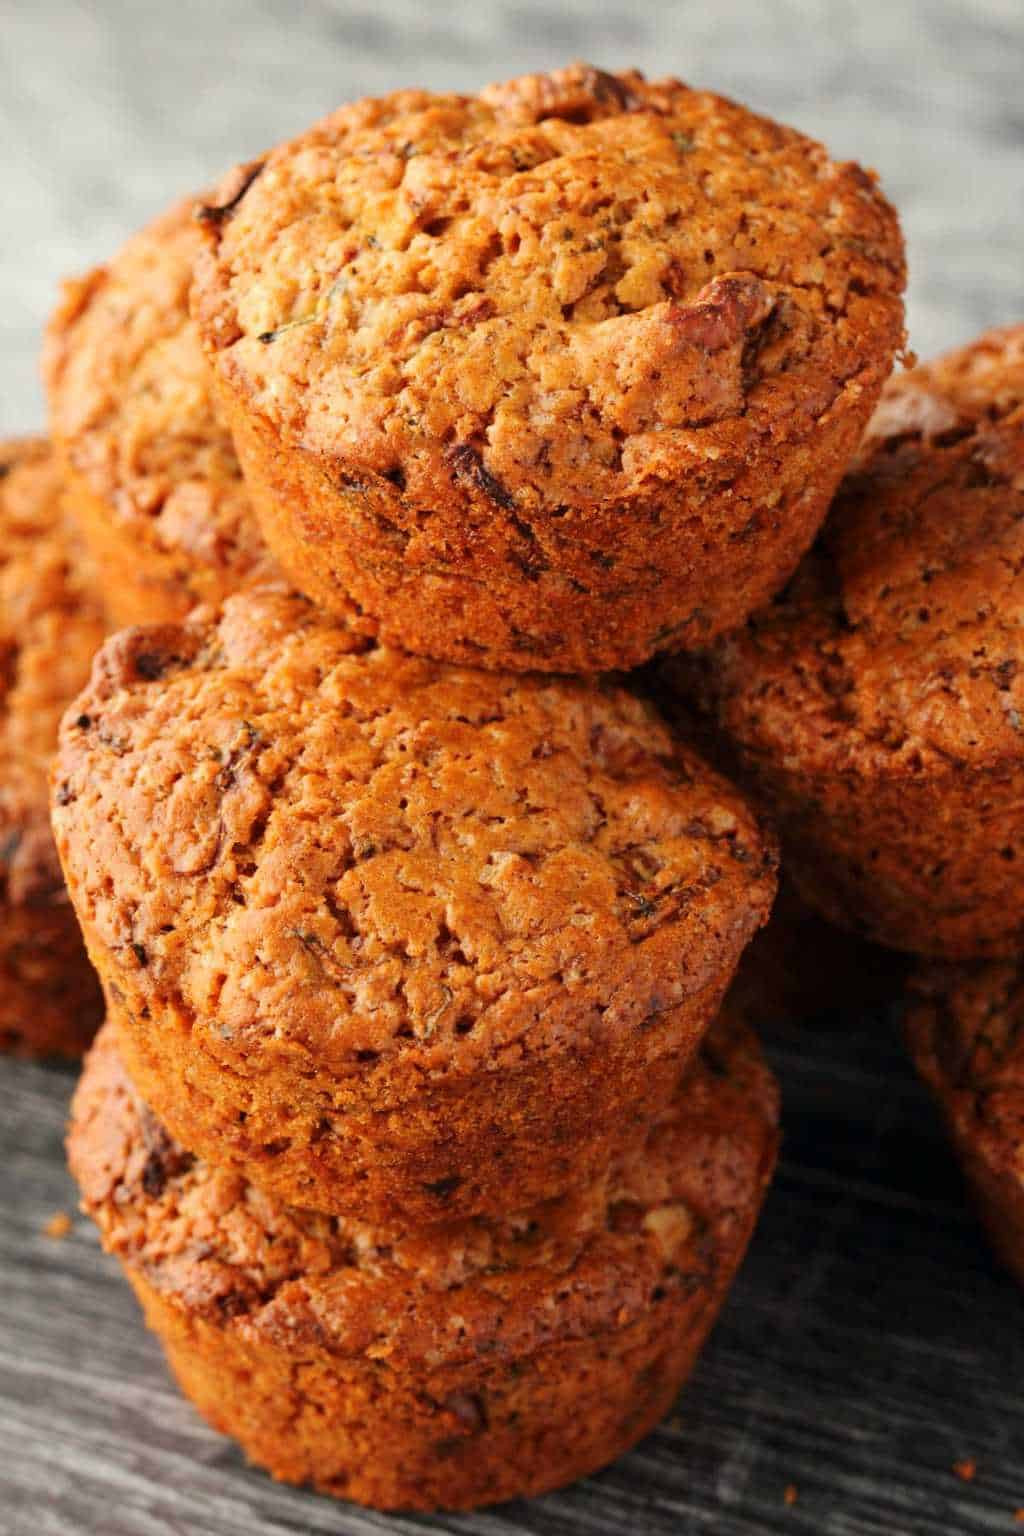 Vegan Zucchini Muffins  Vegan Zucchini Muffins Wholesome and Delicious Loving